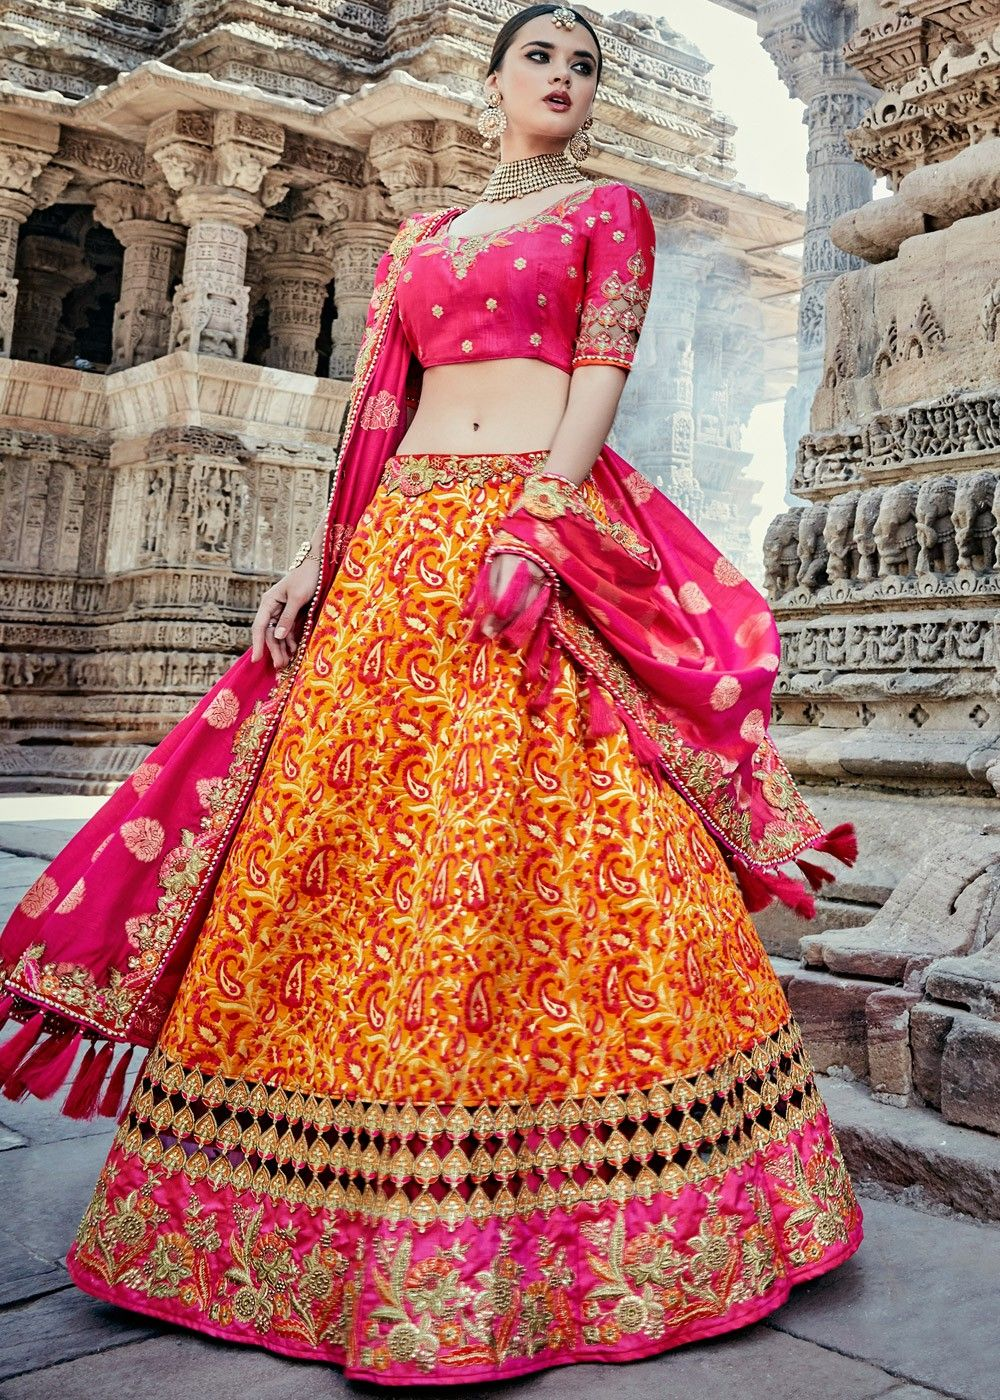 1c06a2e8e2 #Yellow A Line woven bridal #lehenga in #banarasi #silk embellished with  intricate #zari #embroidery, beaded details and stone work.